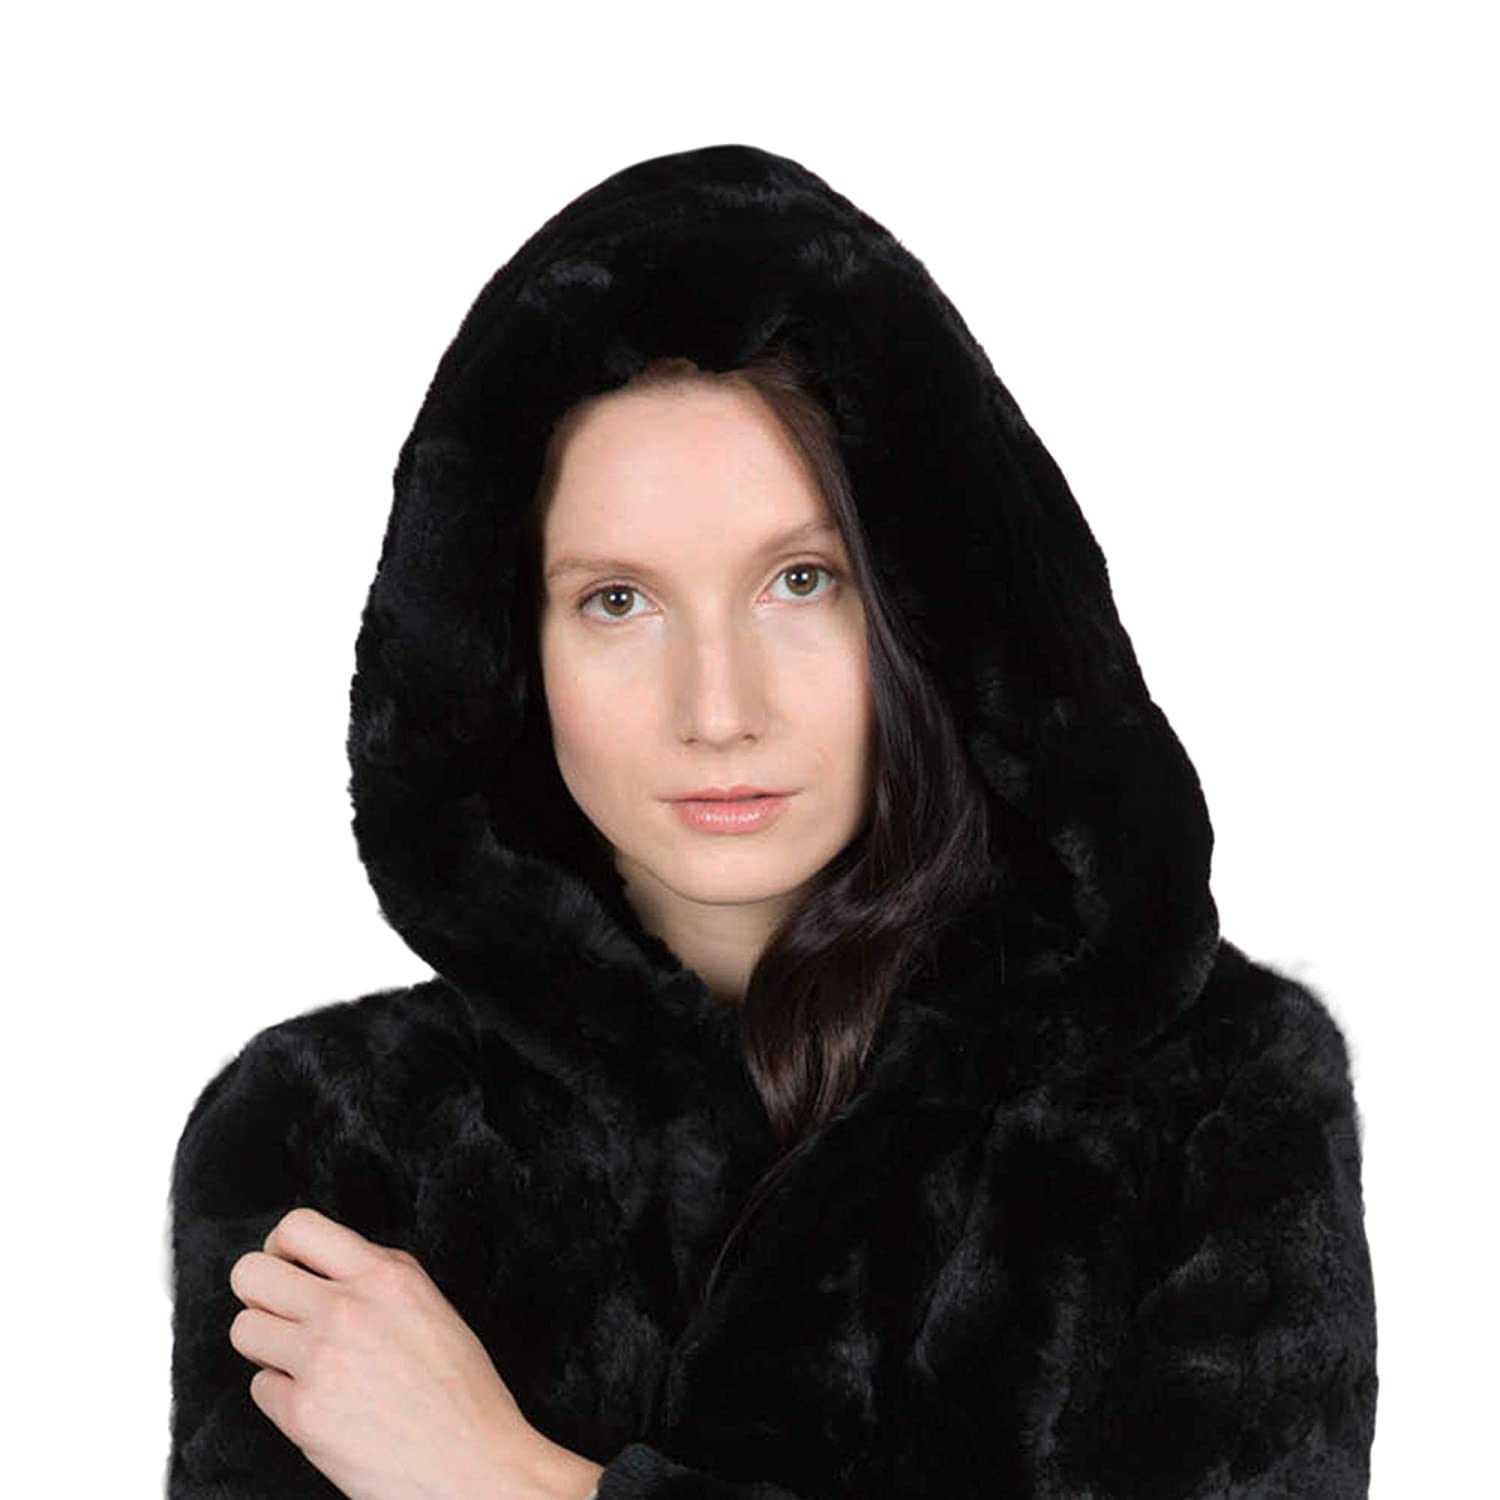 ff5d21340 OBURLA Women's Real Rex Rabbit Fur Jacket with Hood Fur Hooded Parka |  Soft, Luxurious and Warm Winter Coat (Small) at Amazon Women's Coats Shop